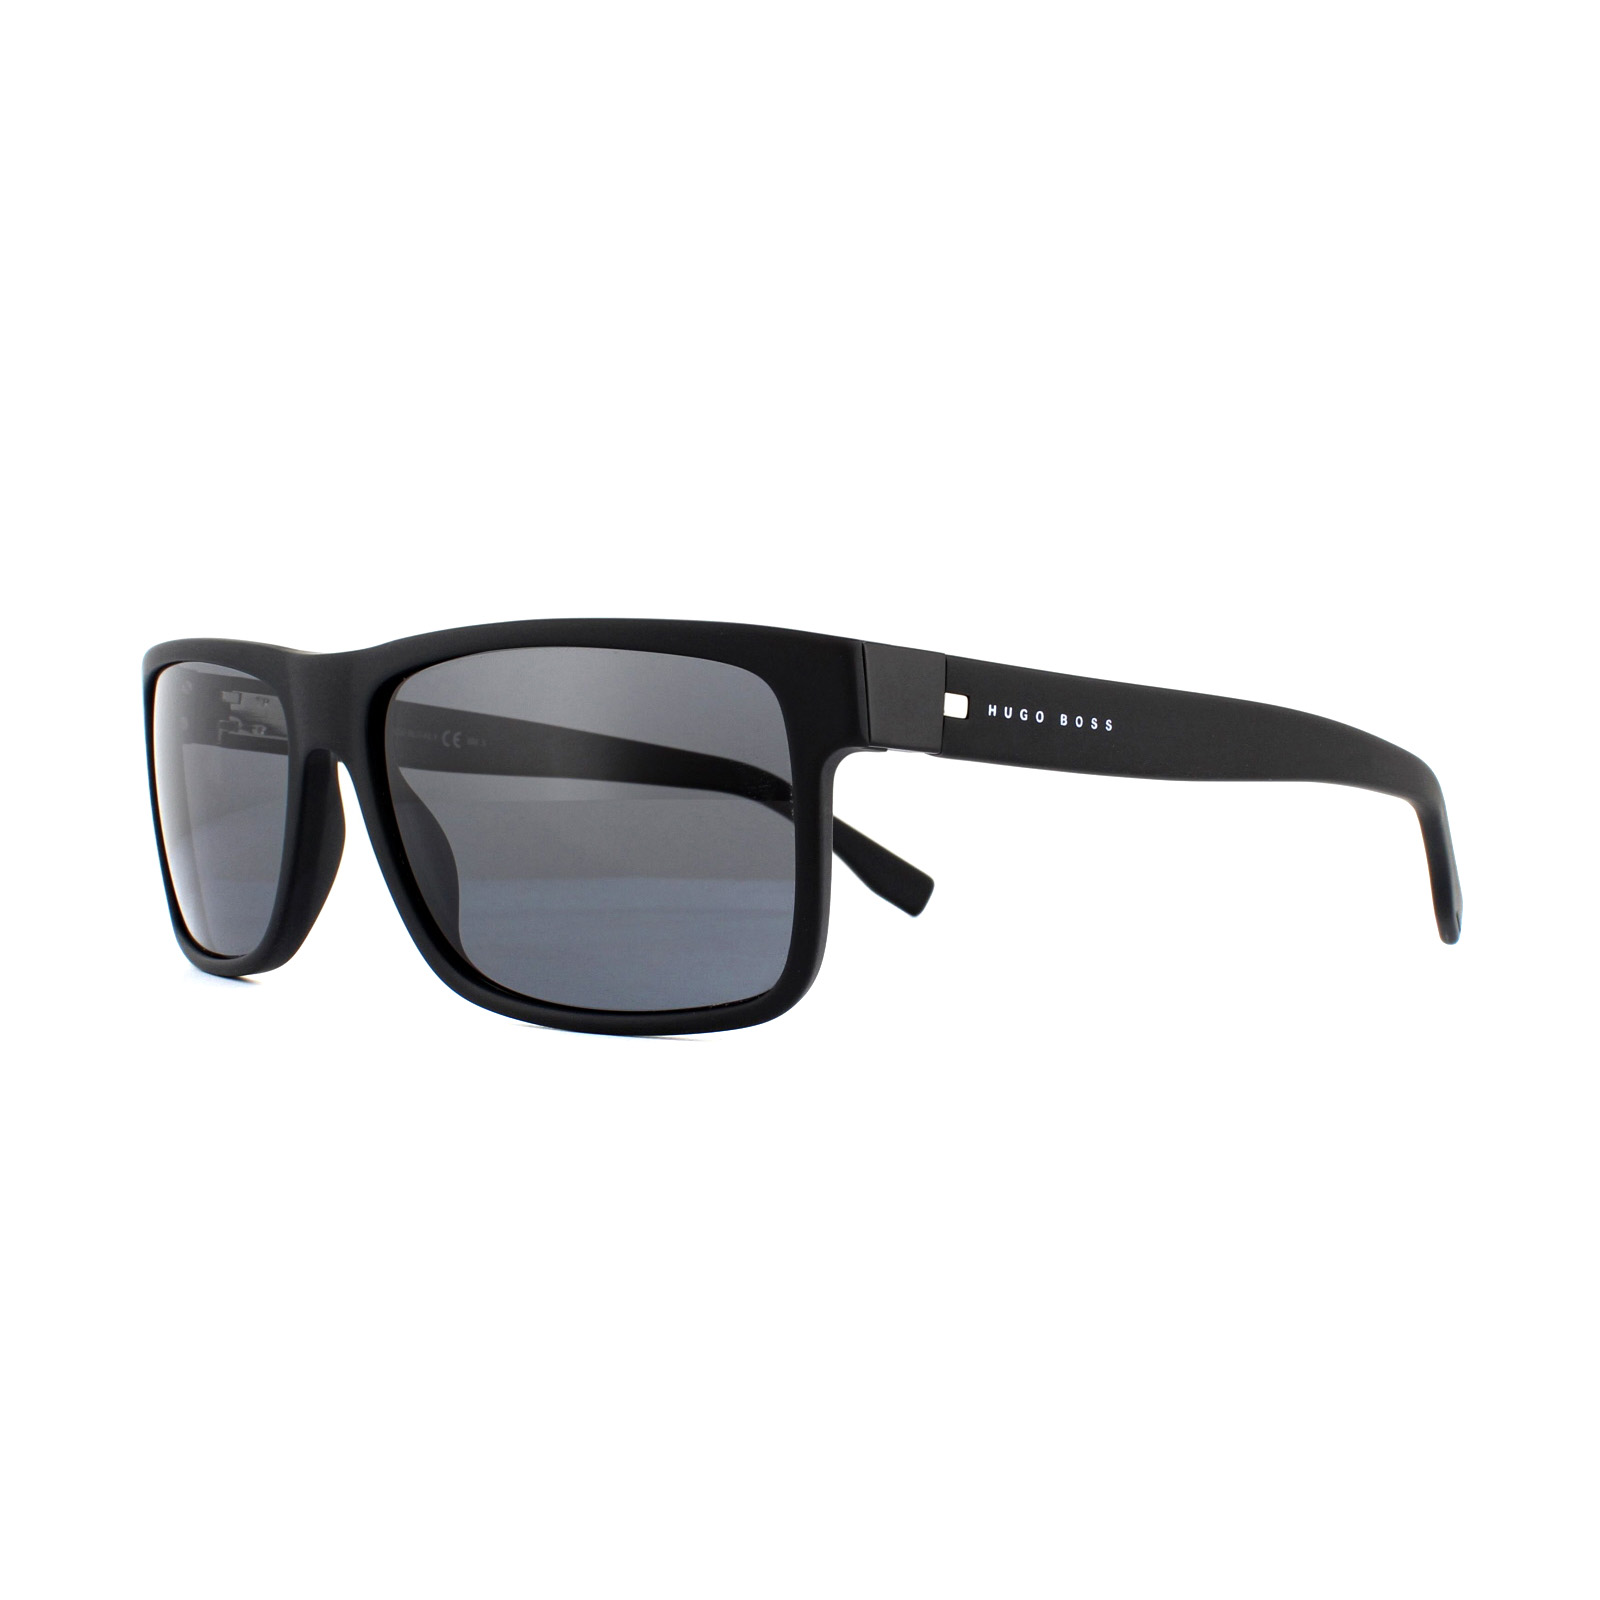 Hugo Boss occhiali da sole 0599//S T7O TD Matte Black Grey Polarized